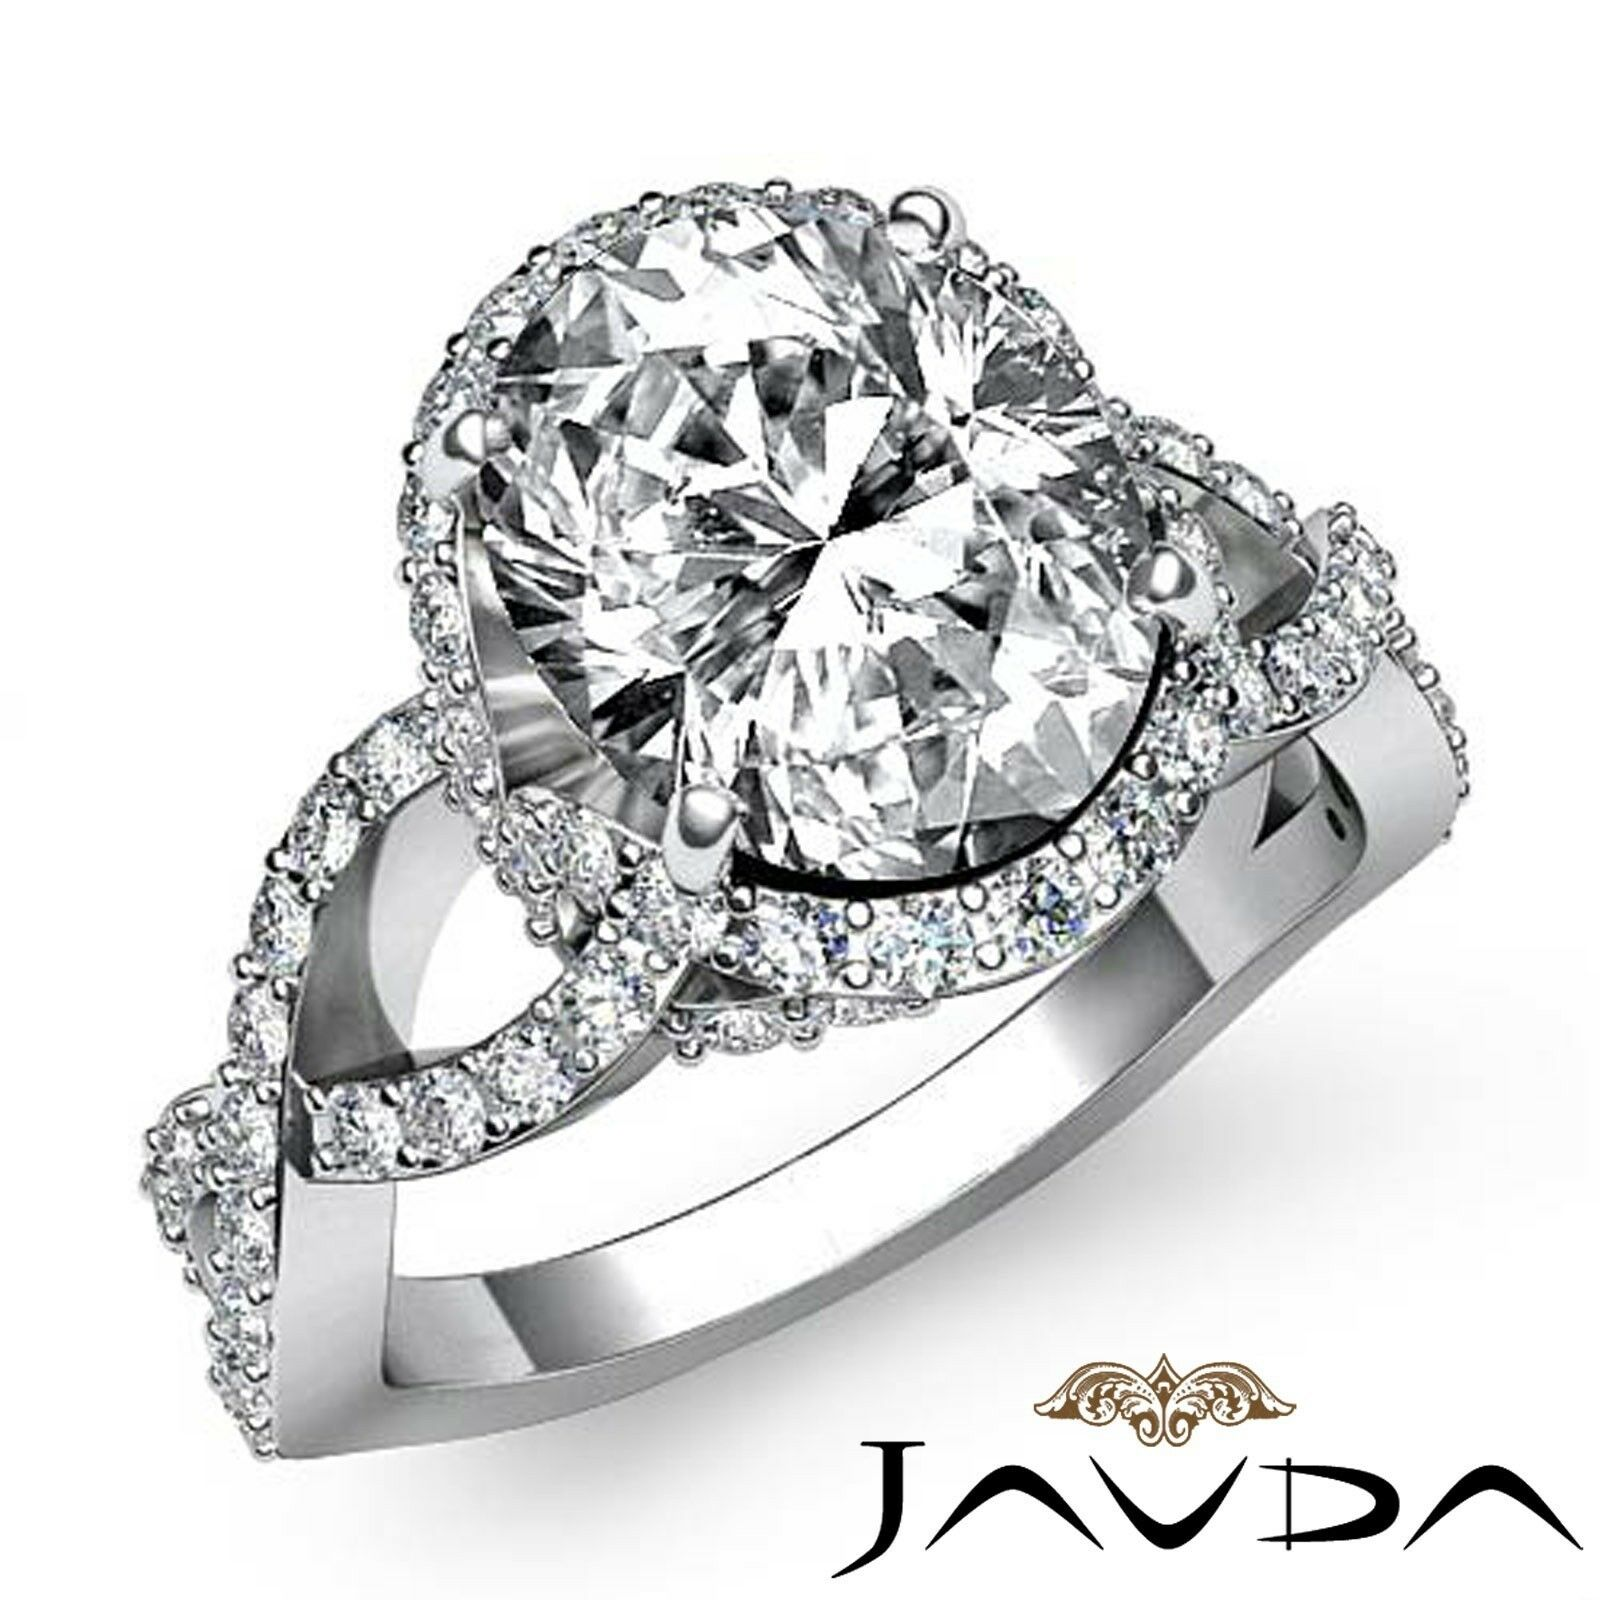 2ct Halo Pave Set Cross-Shank Oval Diamond Engagement Ring GIA H-VVS2 White Gold